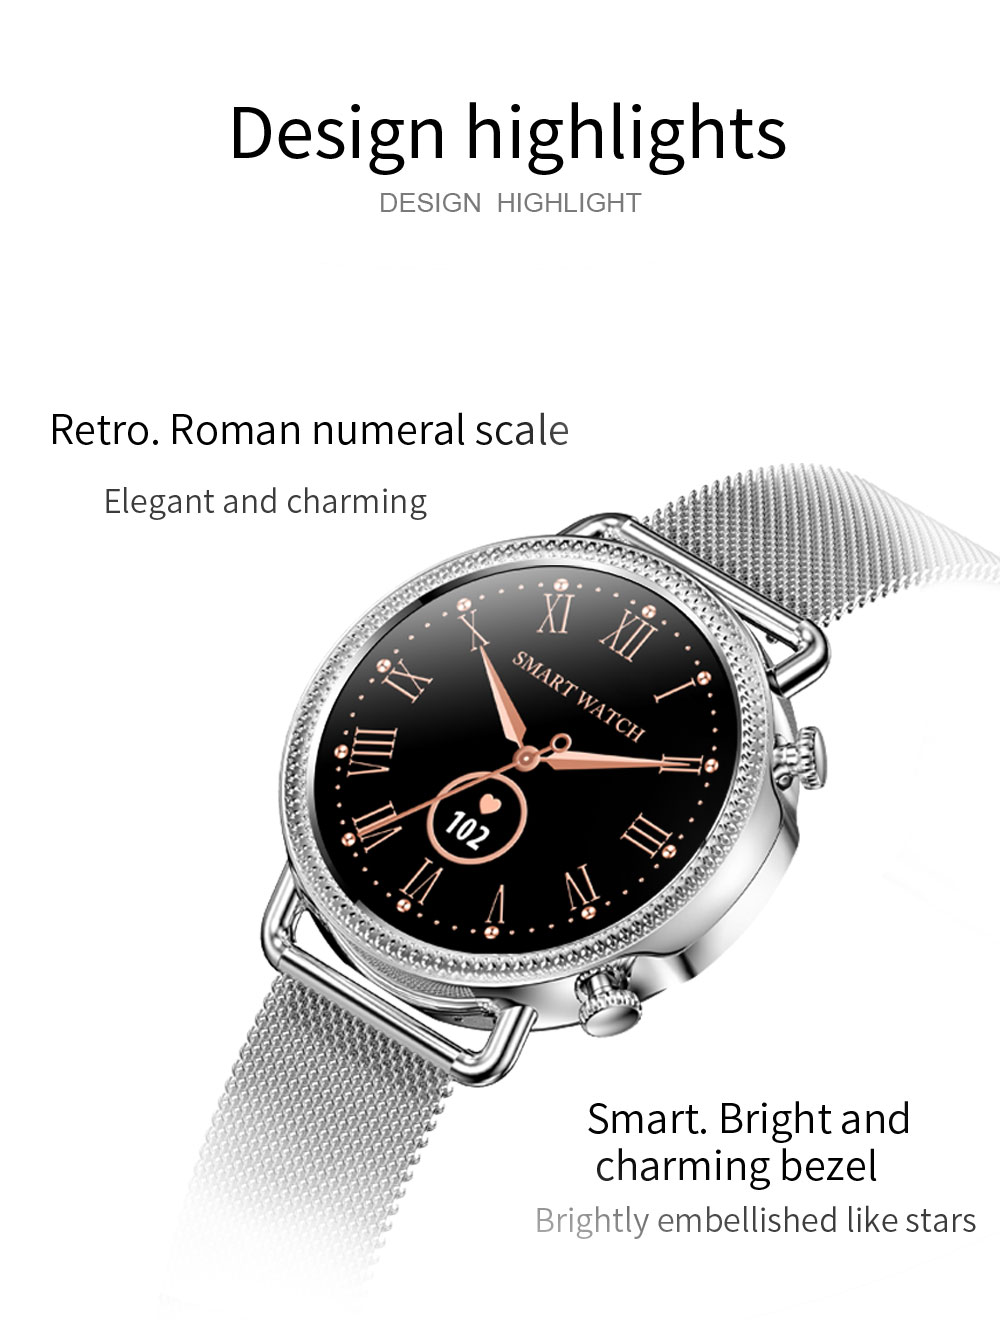 H6619f08e3e884076803c736e102a279dX 2021 Women Smart Watch 1.28 inch HD Screen IP67 Waterproof Lady's Watches Body Temperature Heart Rate Monitor PK V23